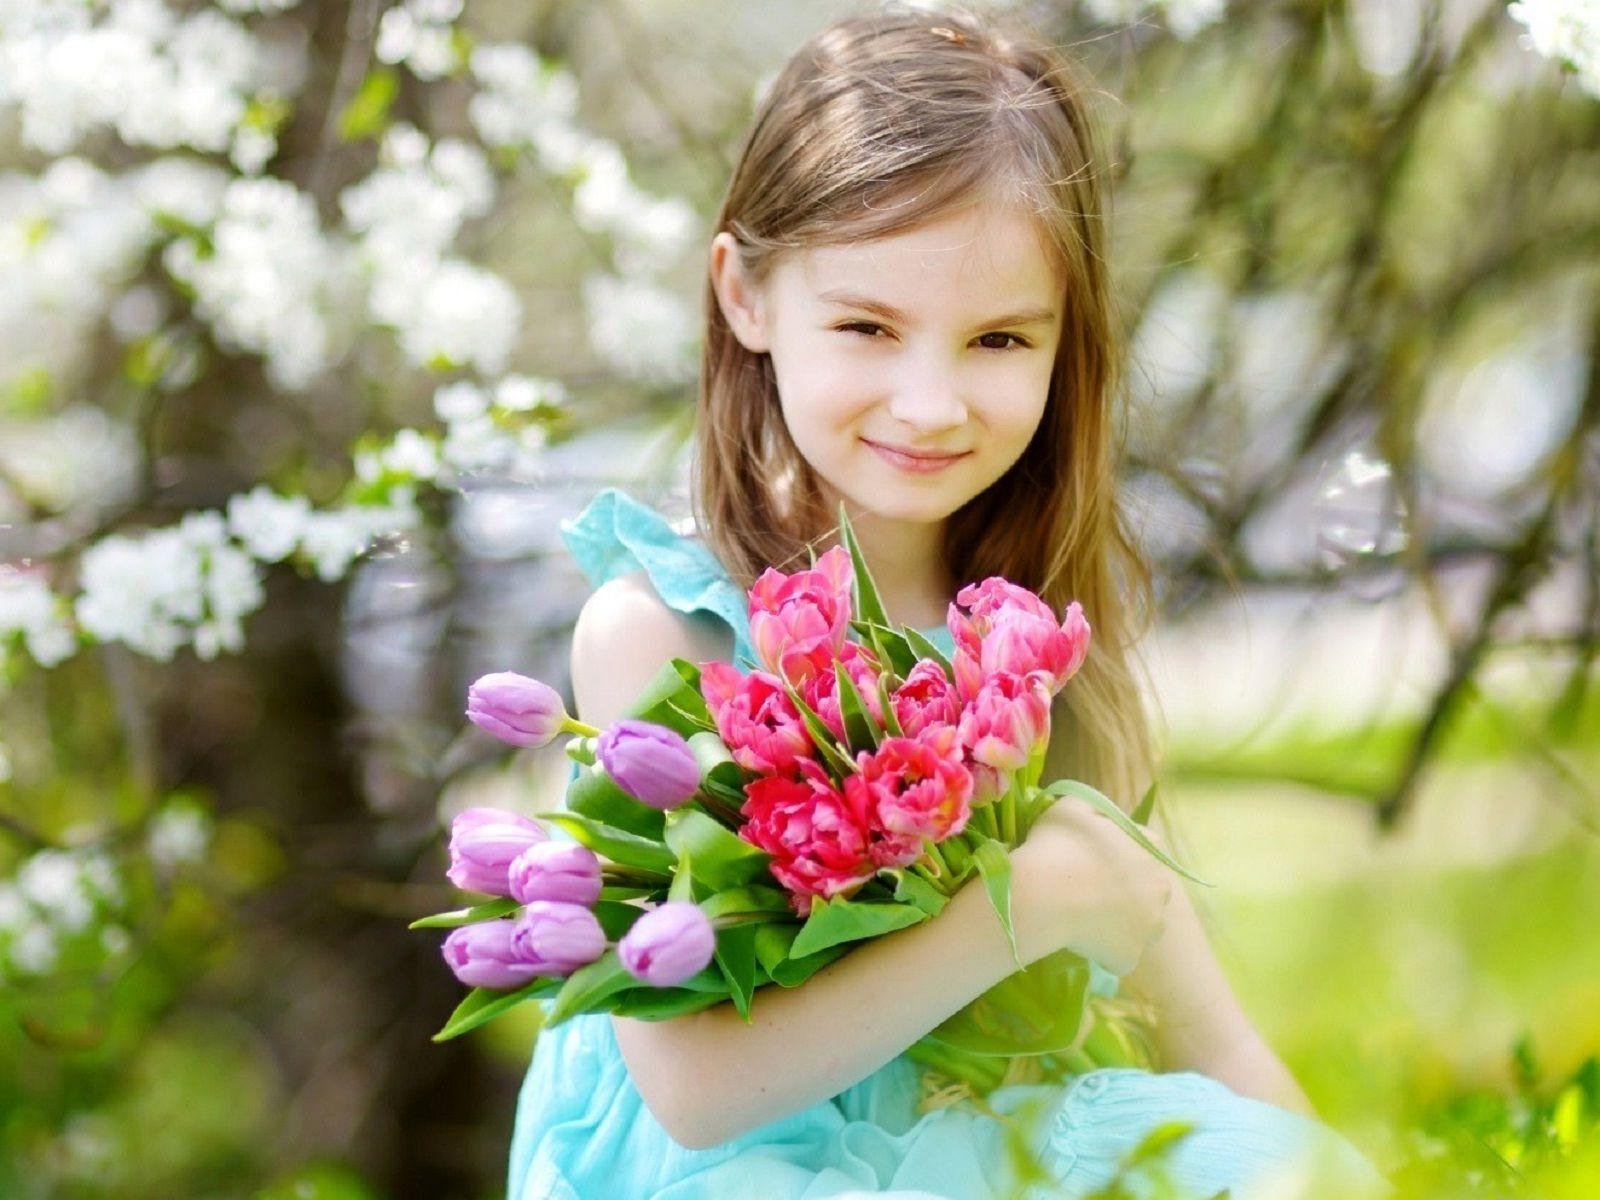 To acquire Little stylish girl wallpapers pictures trends